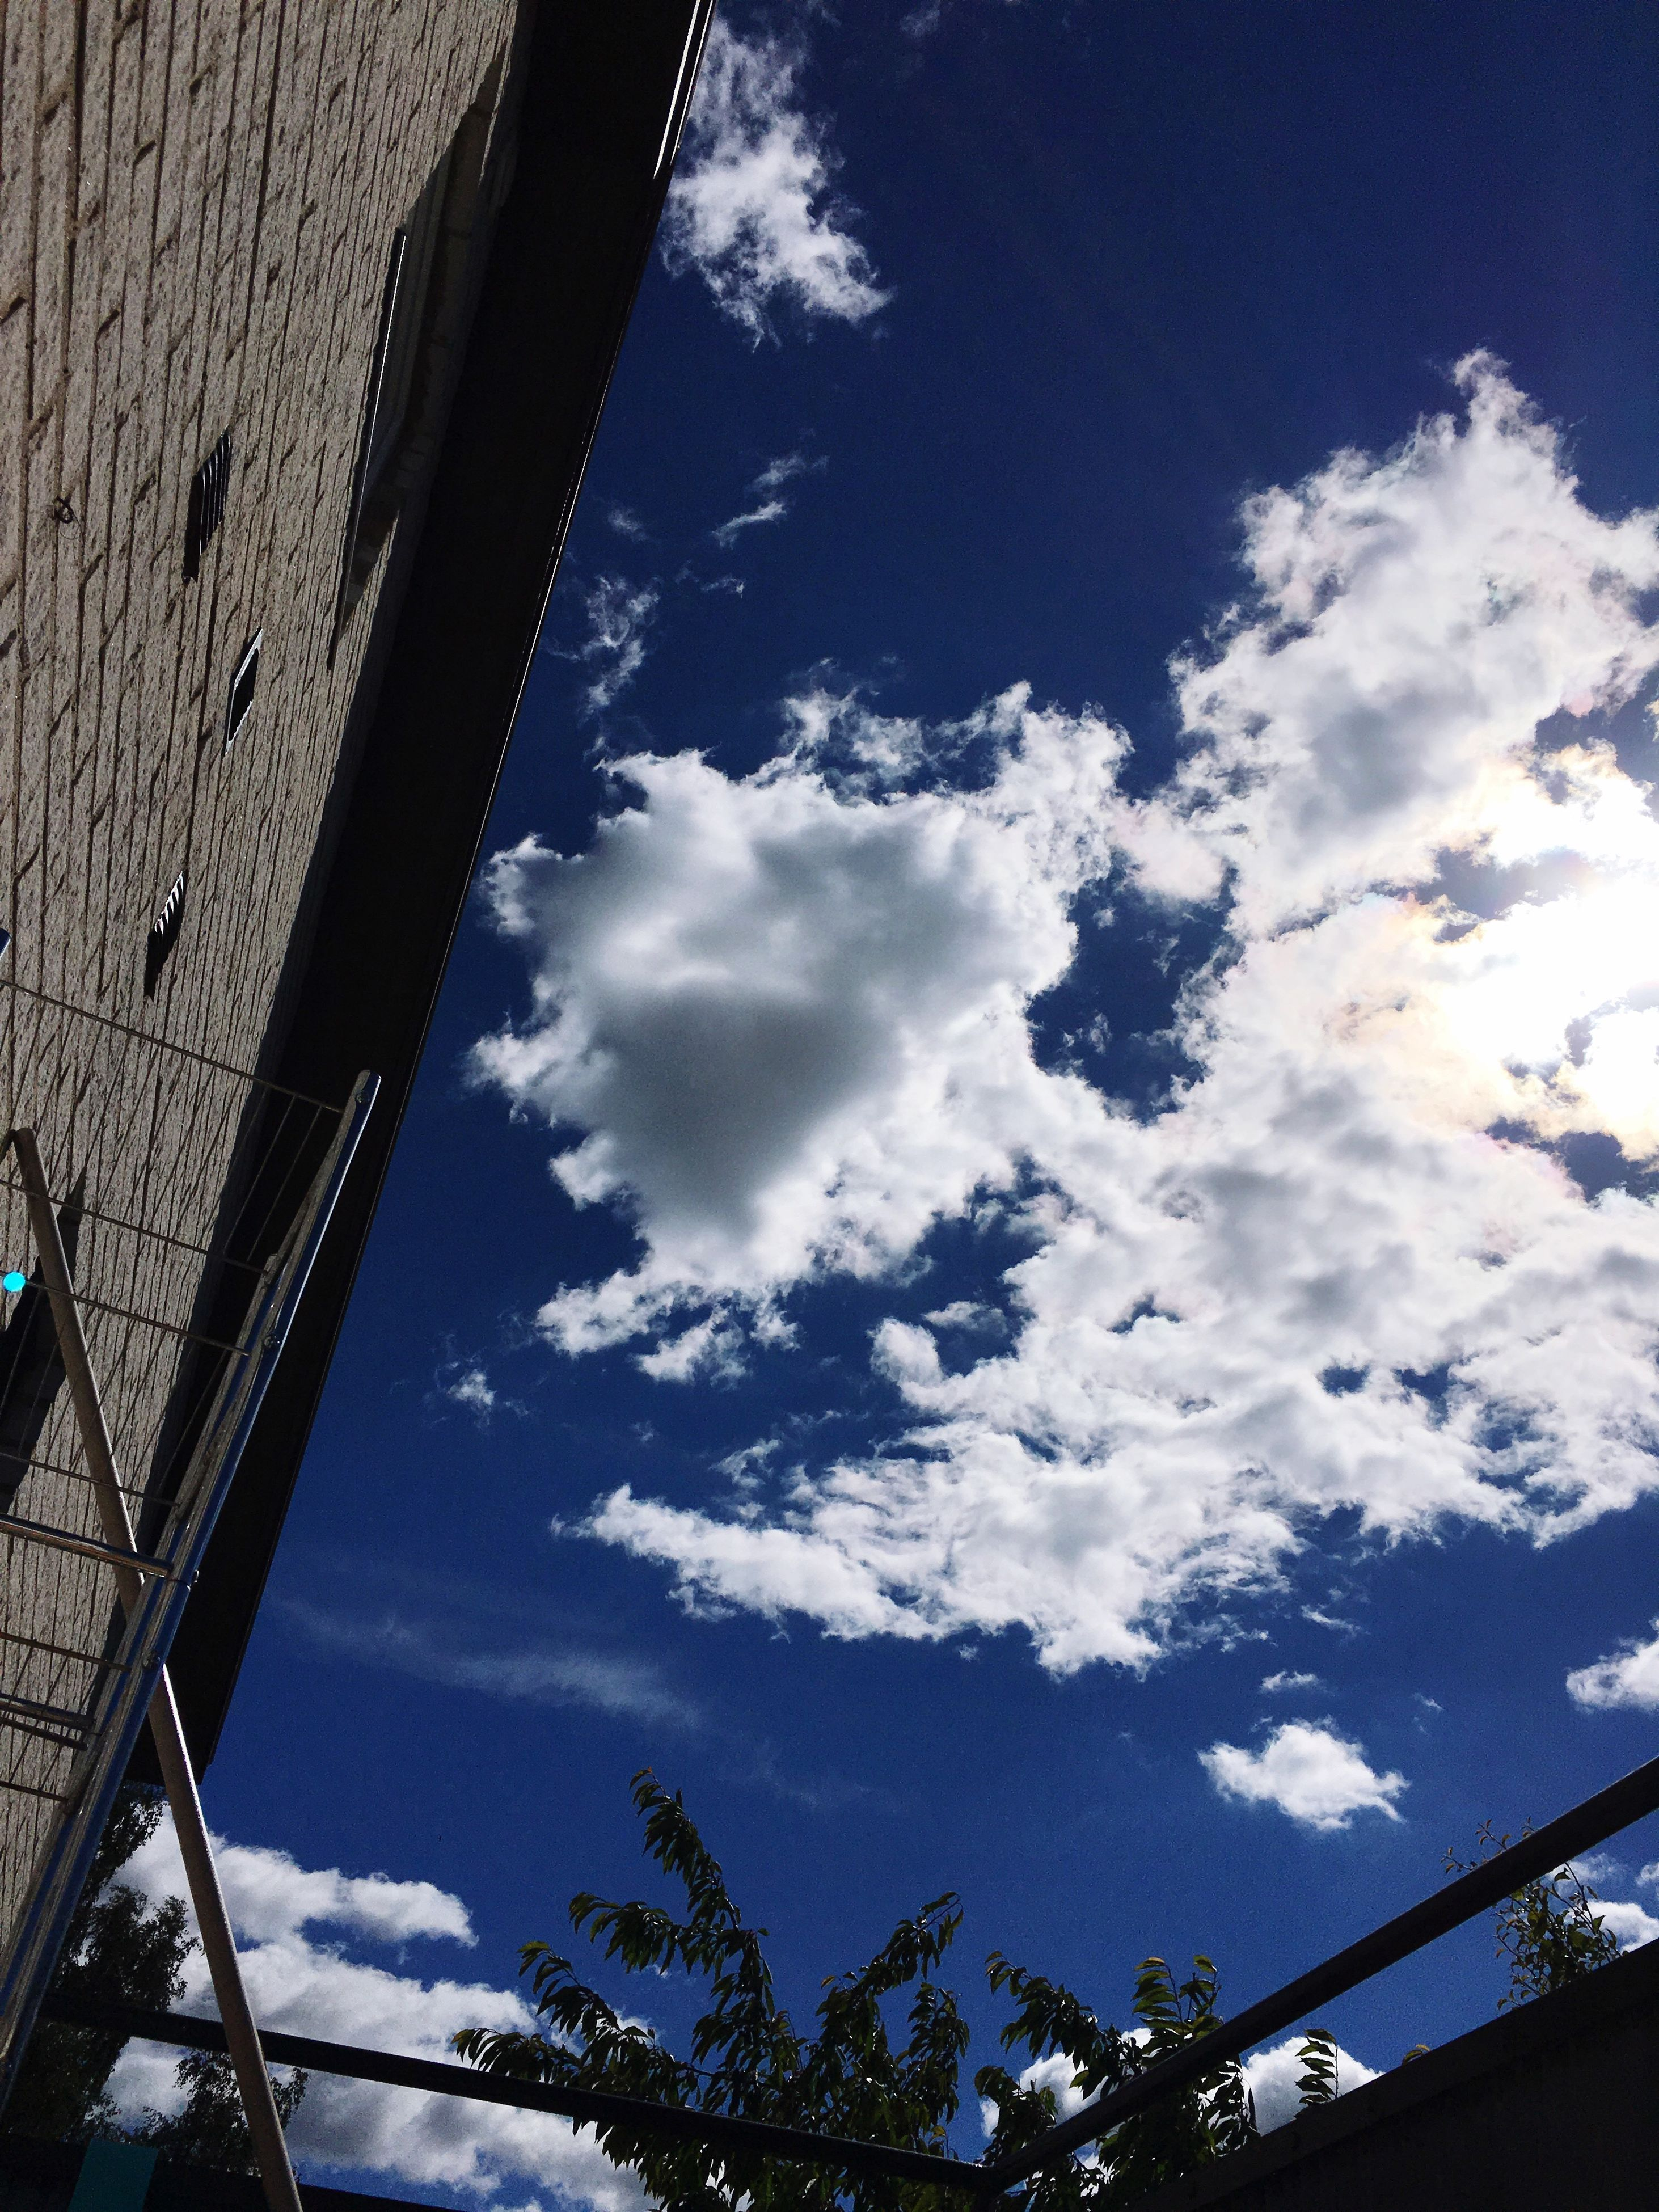 low angle view, sky, cloud - sky, built structure, architecture, cloudy, cloud, blue, high section, day, outdoors, no people, nature, weather, beauty in nature, tranquility, scenics